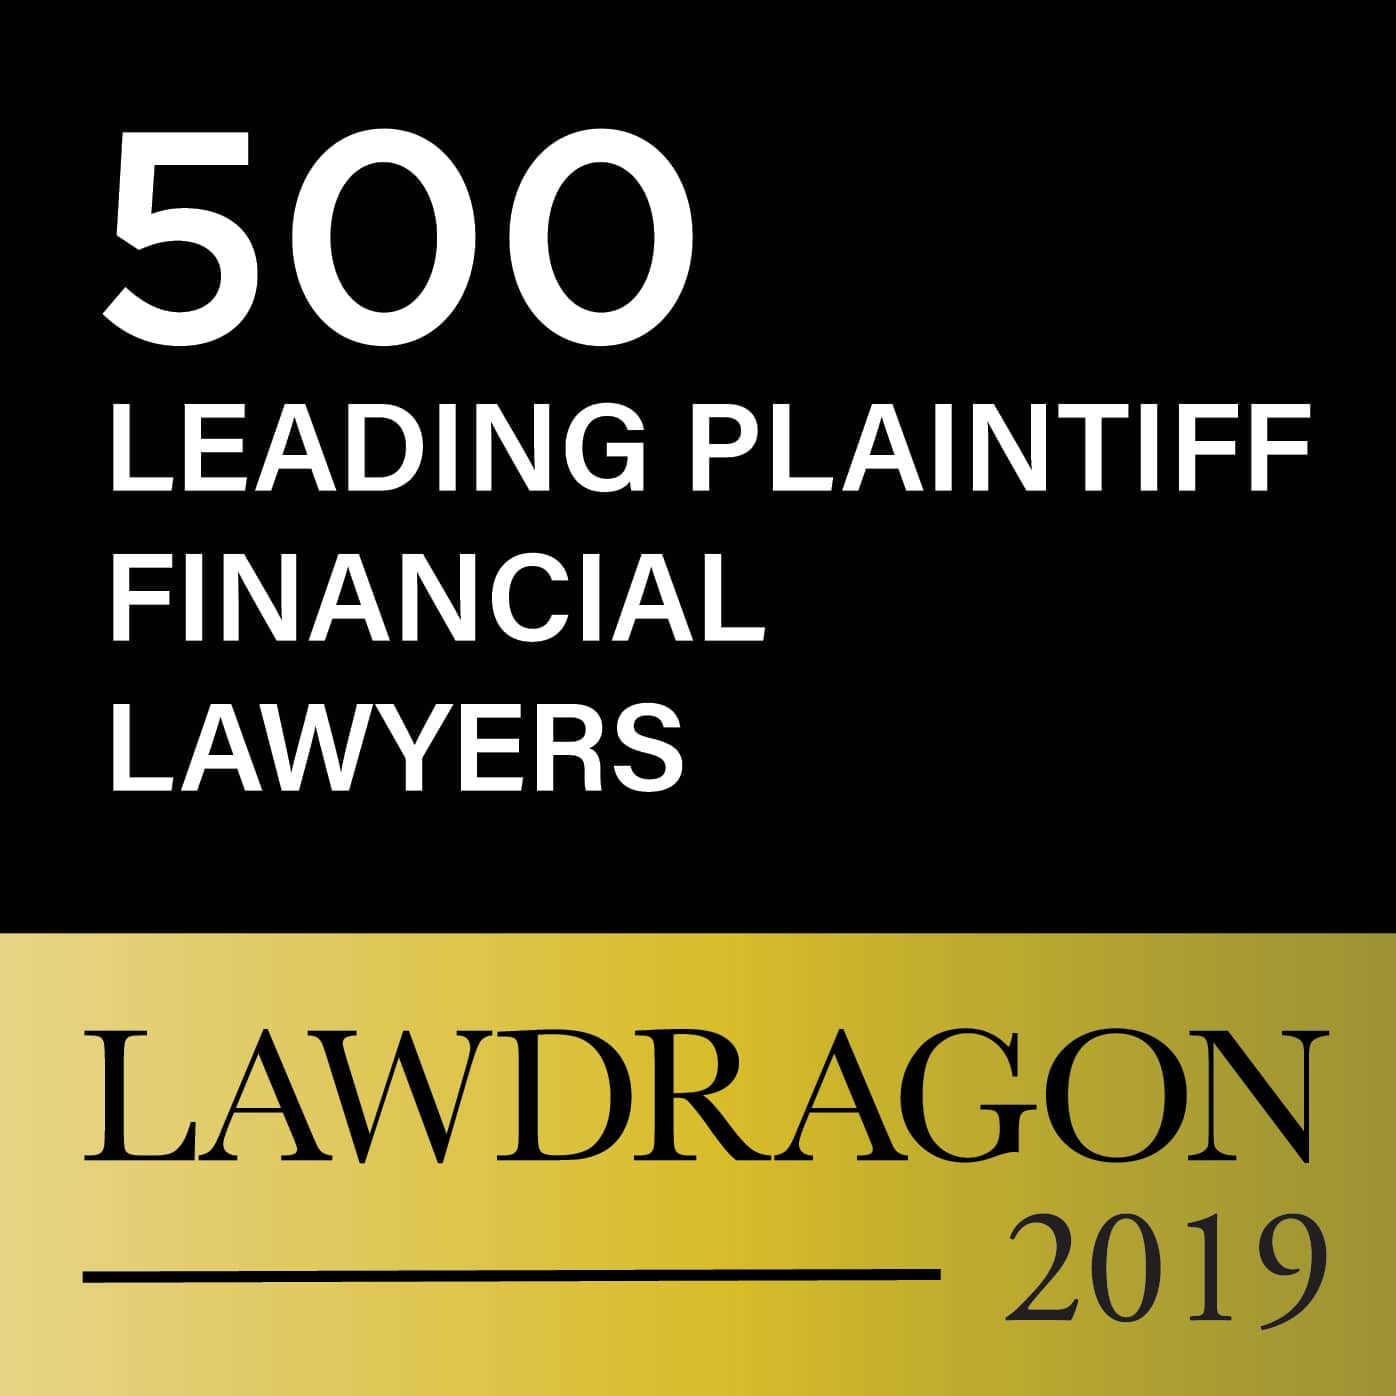 2019 LD Plantiff Financial Lawyer